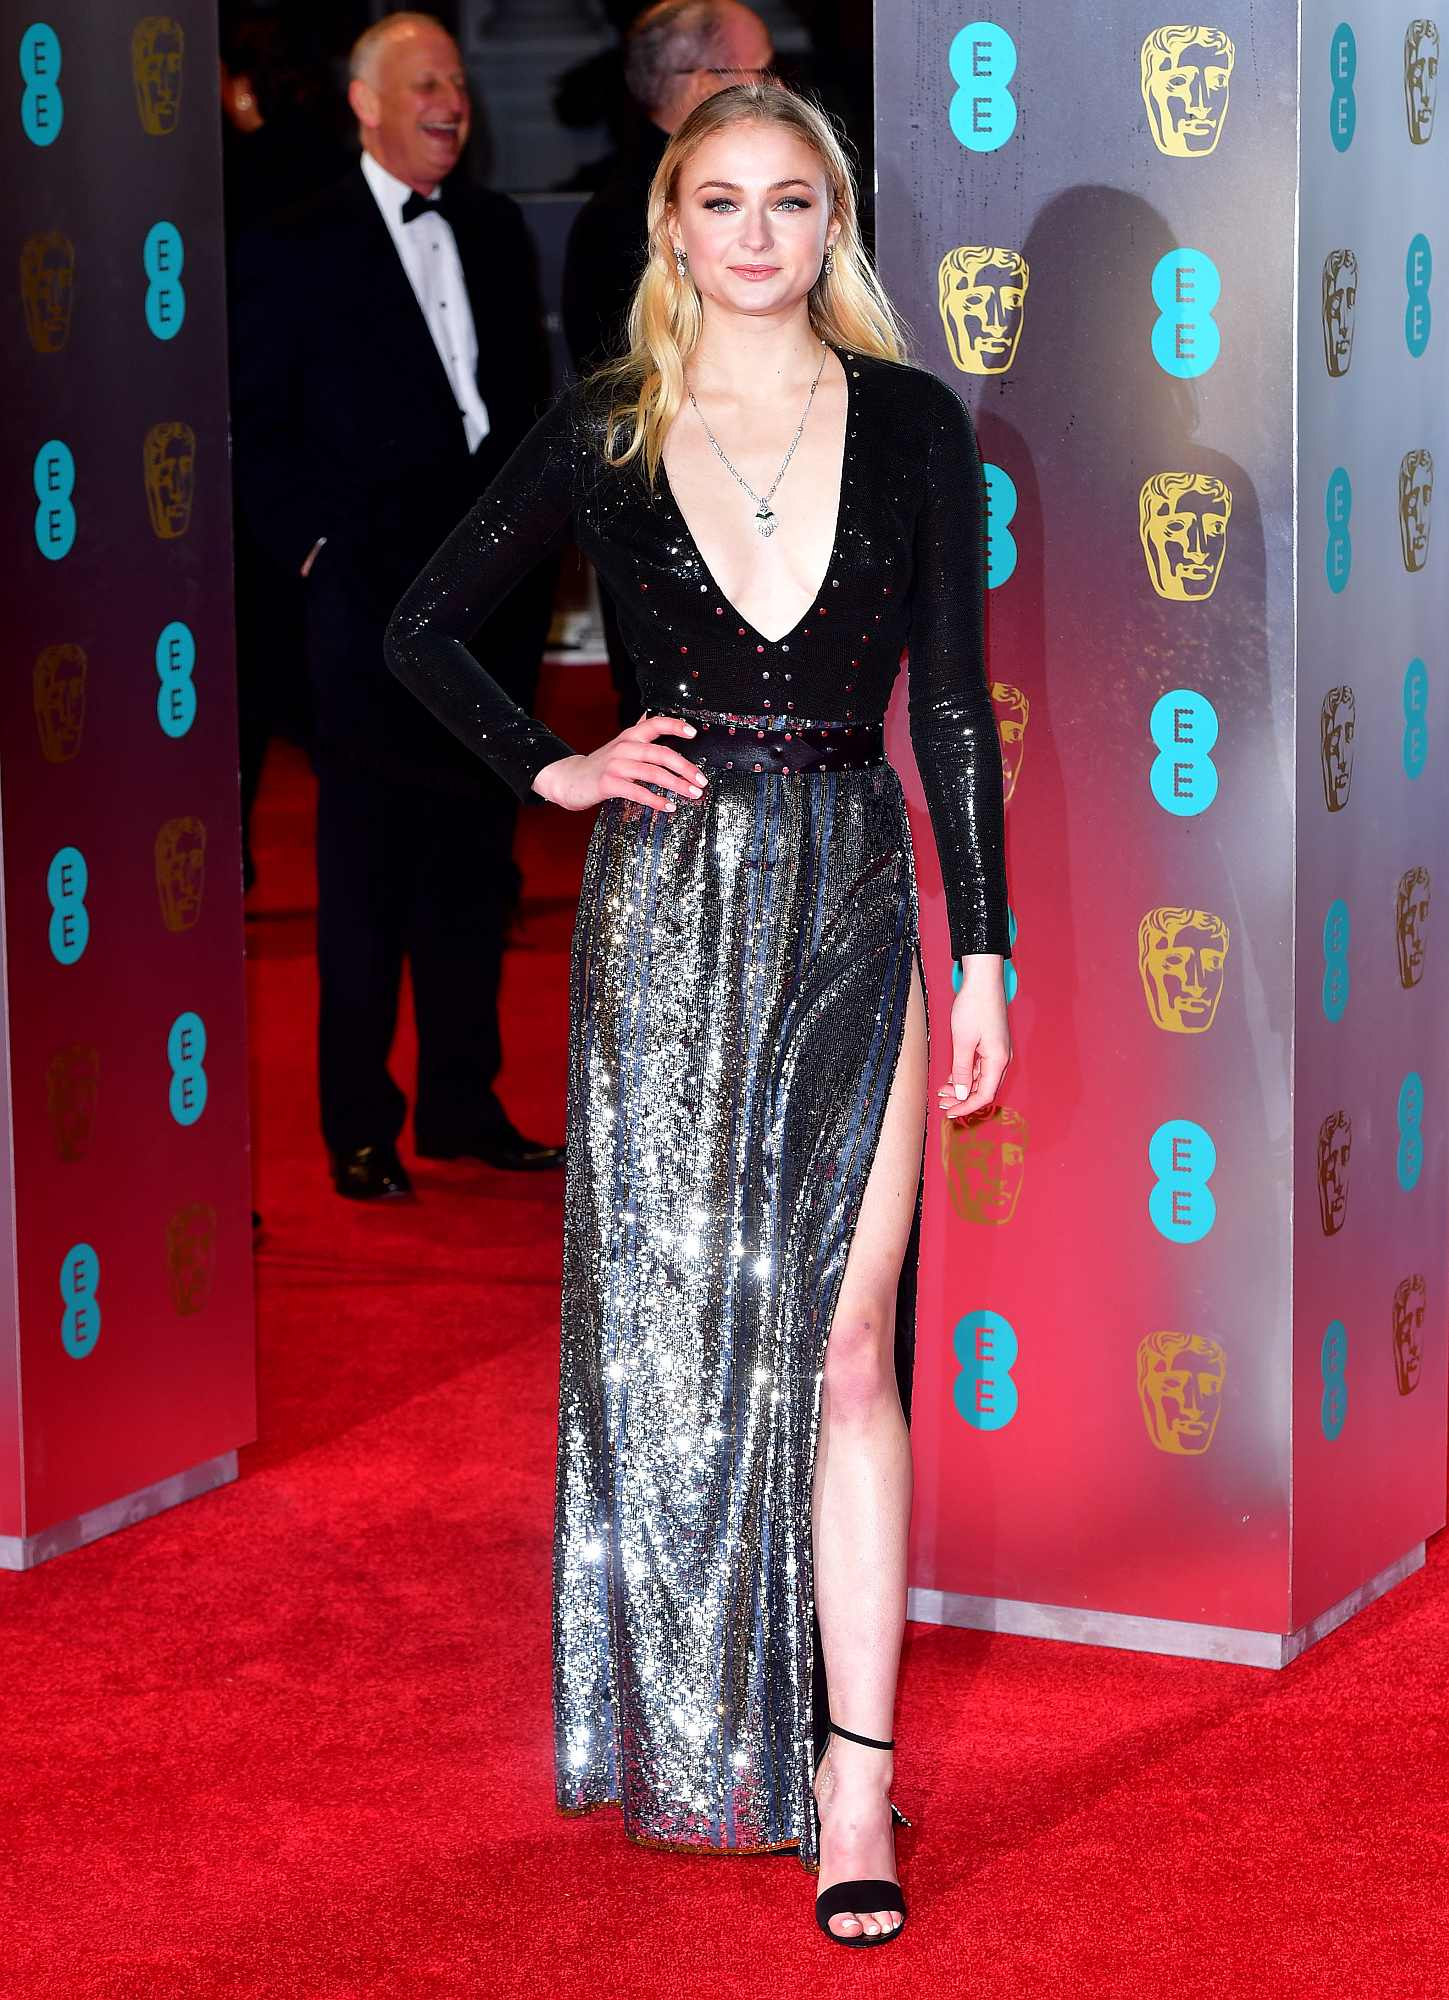 Sophie Turner attending the EE British Academy Film Awards held at the Royal Albert Hall, Kensington Gore, Kensington, London.